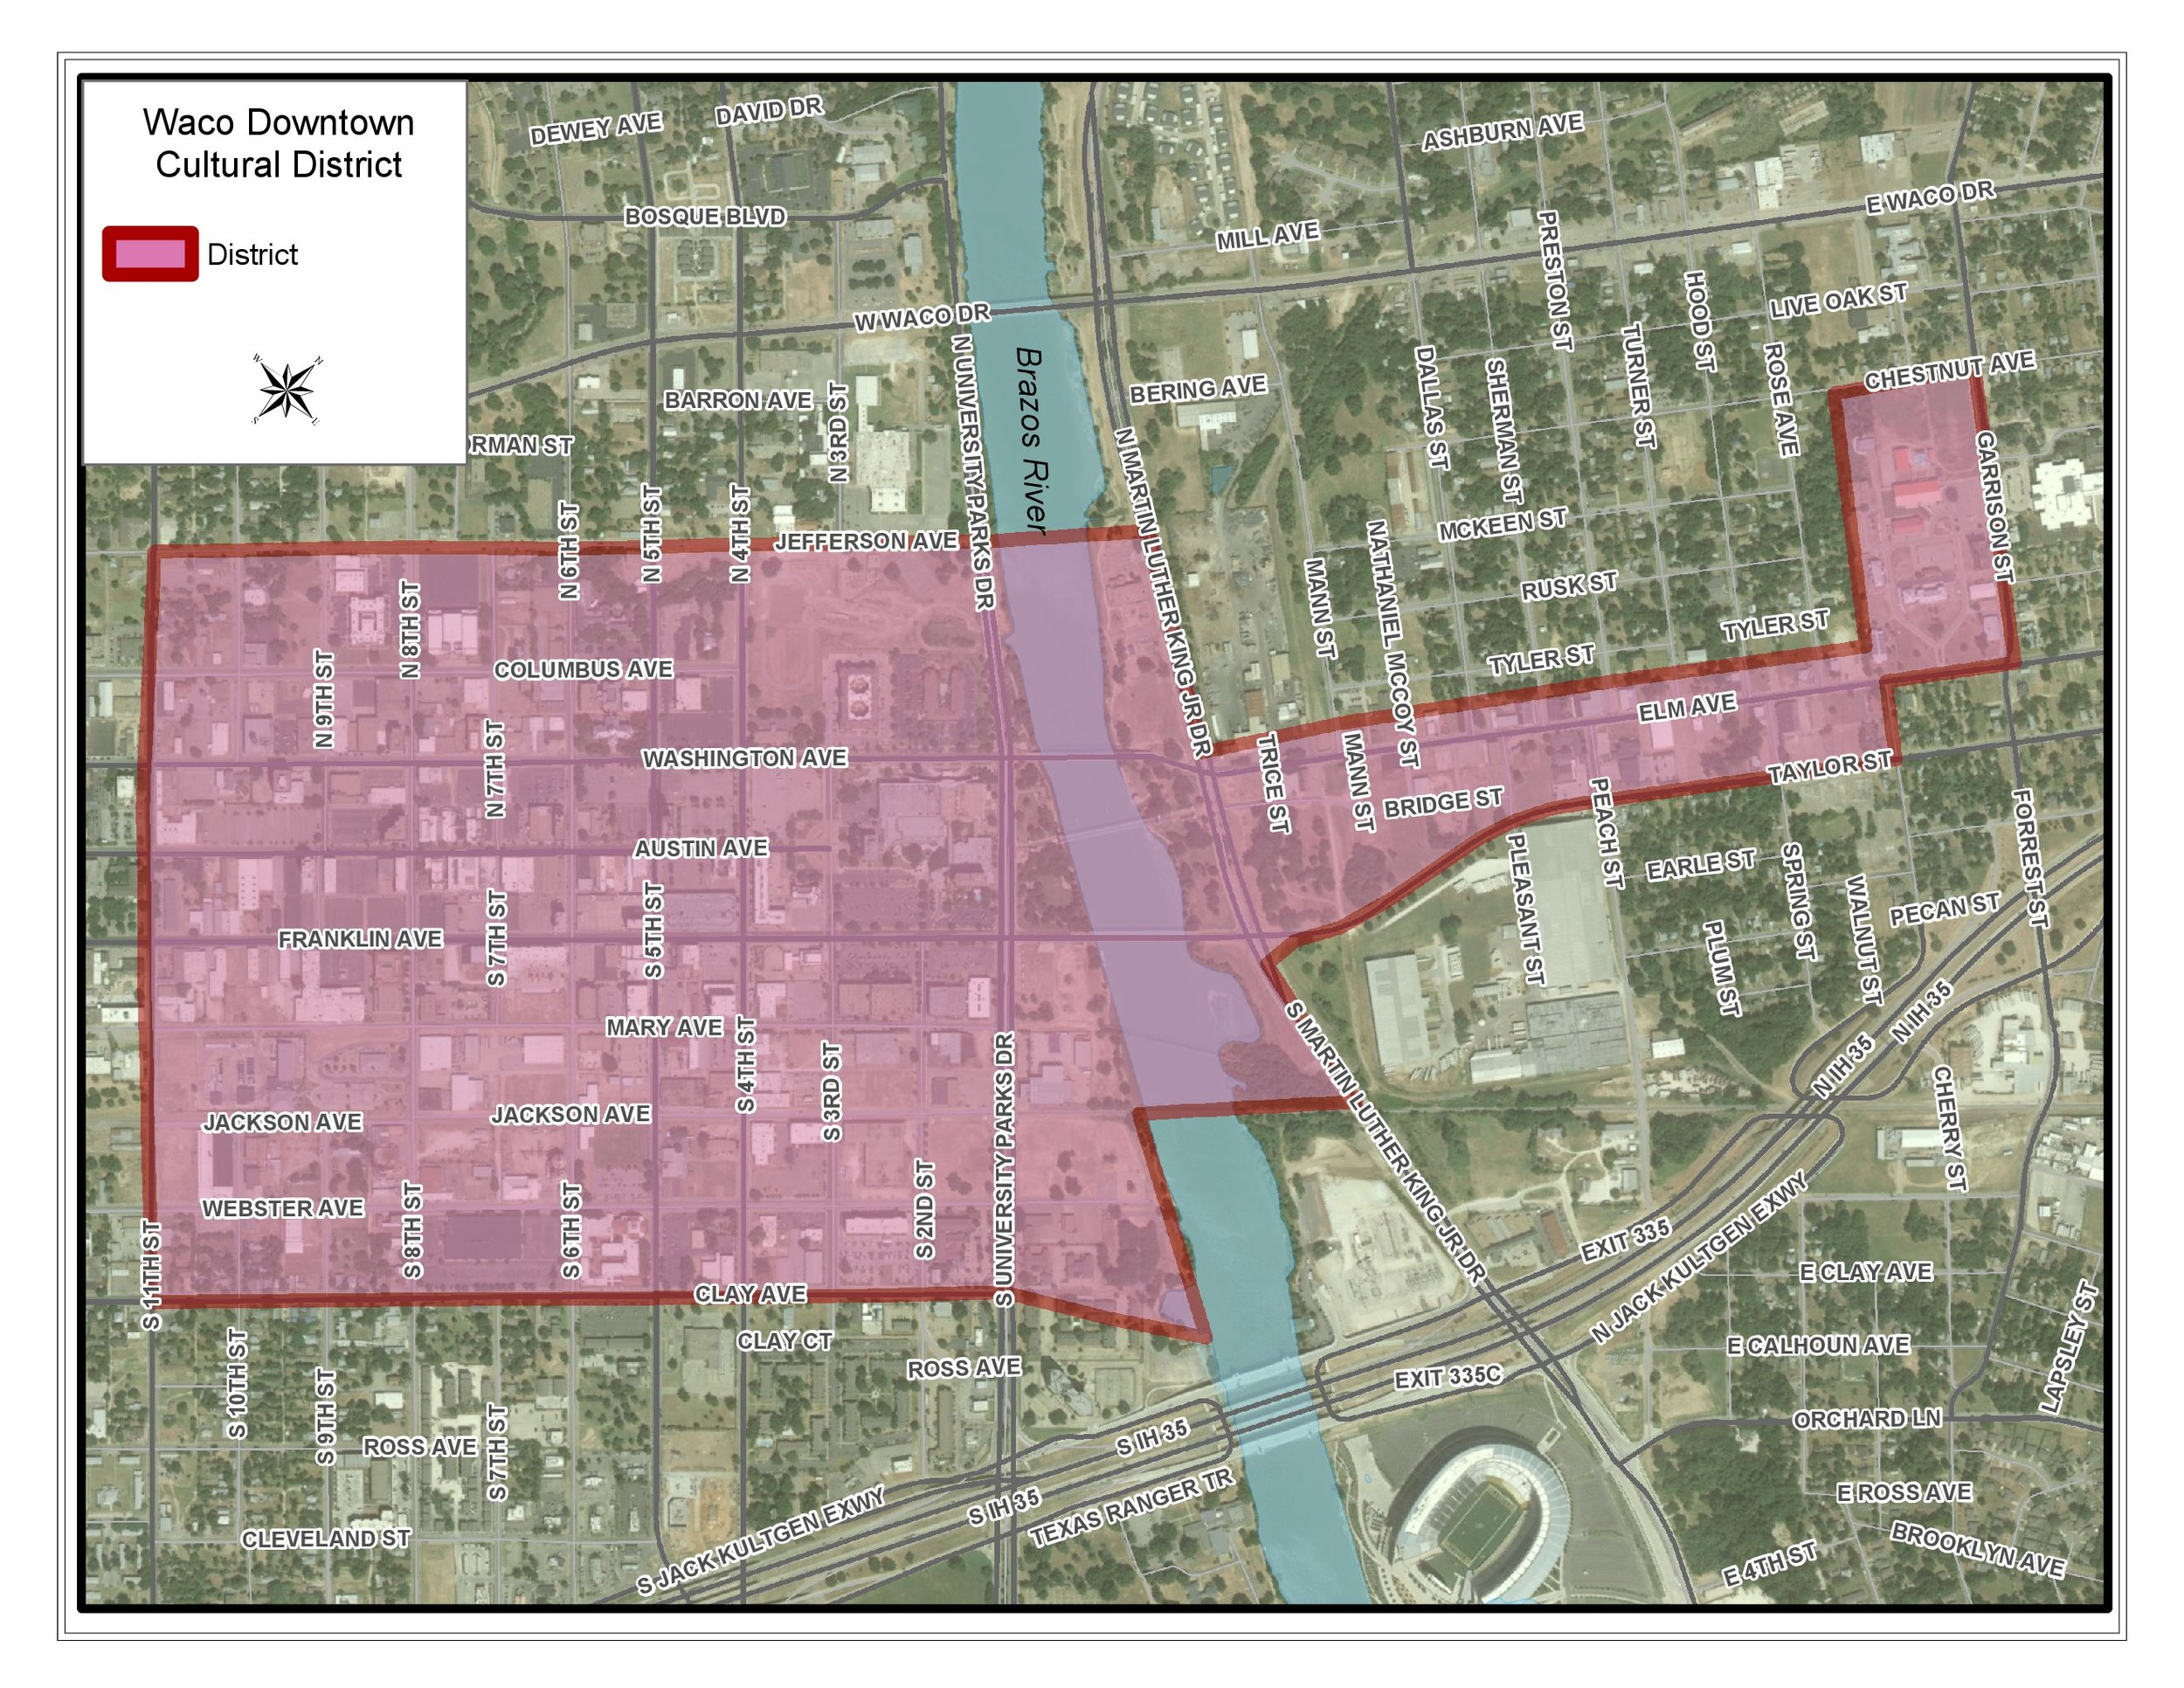 Waco Downtown Cultural District Map